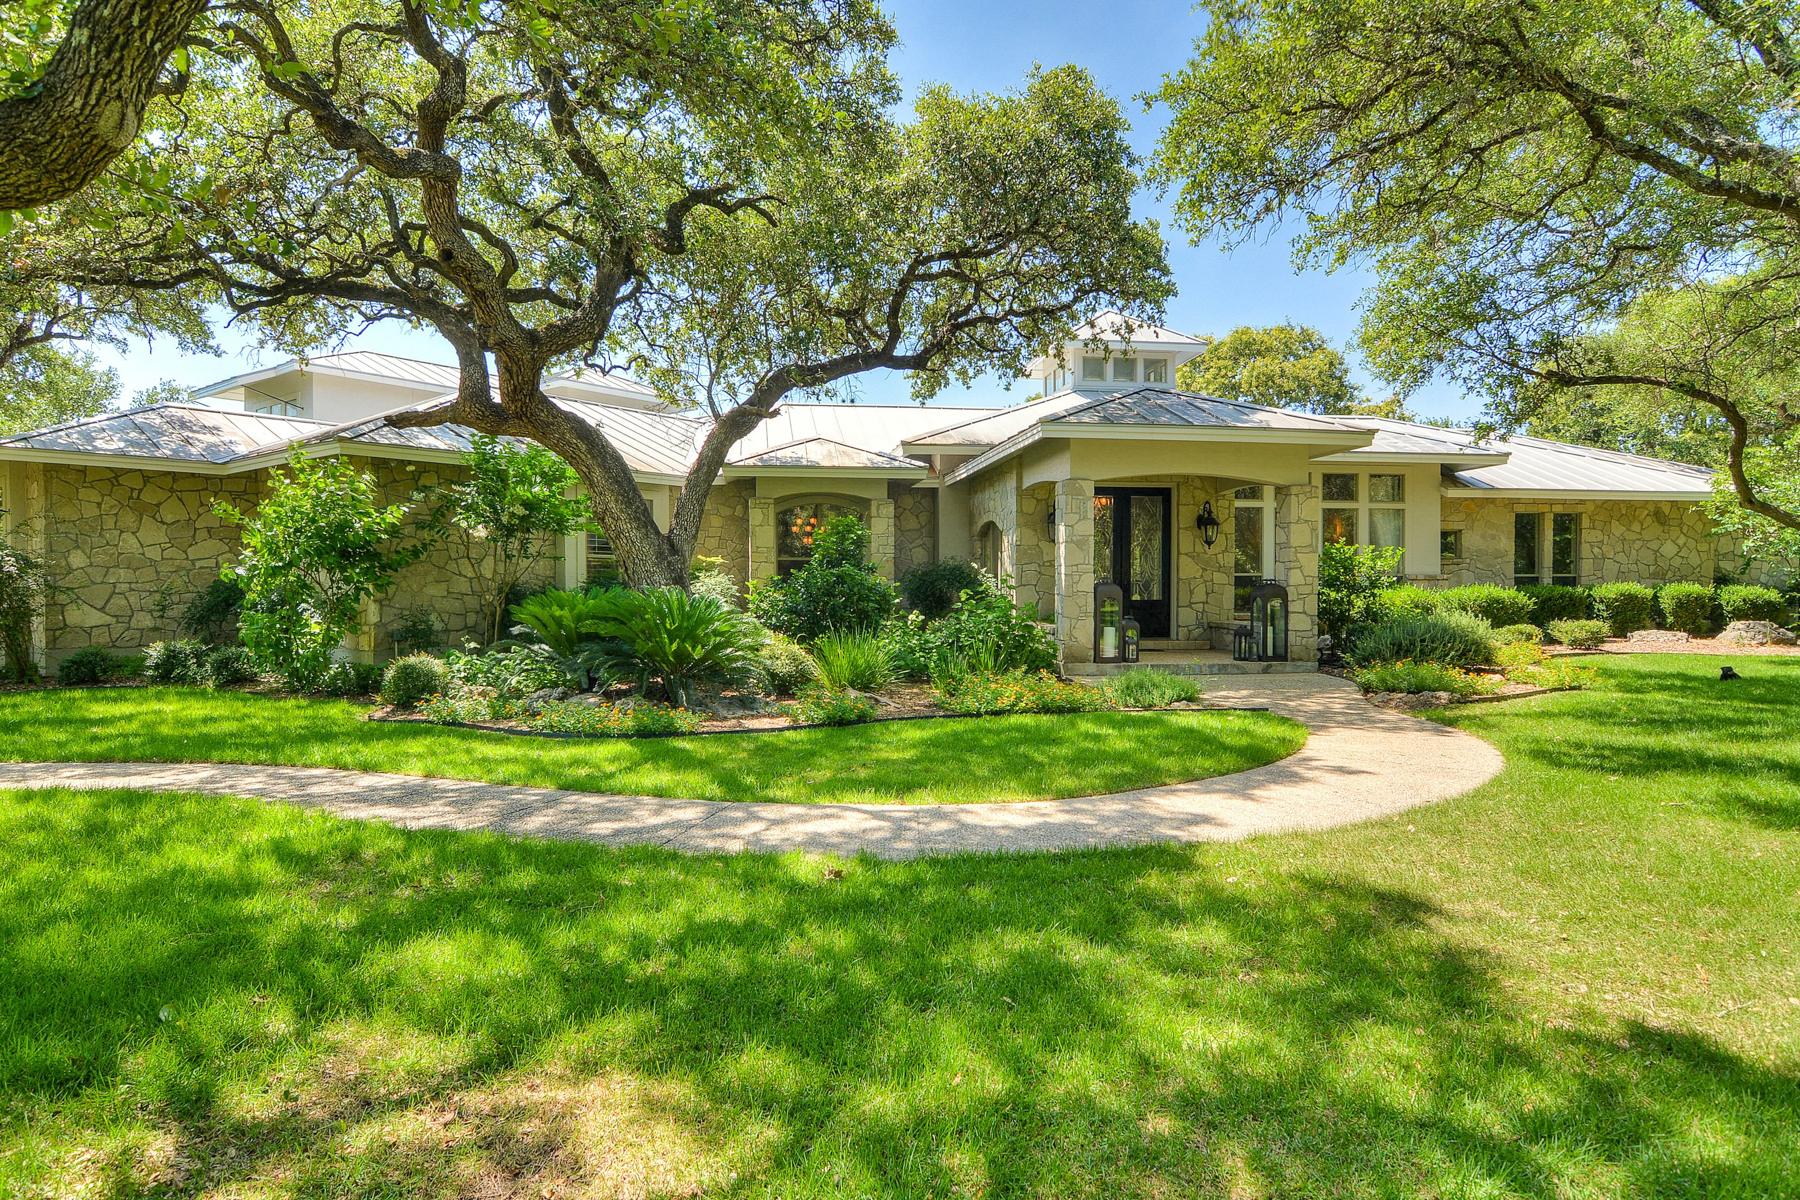 Single Family Home for Sale at Gorgeous Gem in Cibolo Ridge Estates 205 Cibolo Ridge Trl Boerne, Texas 78015 United States